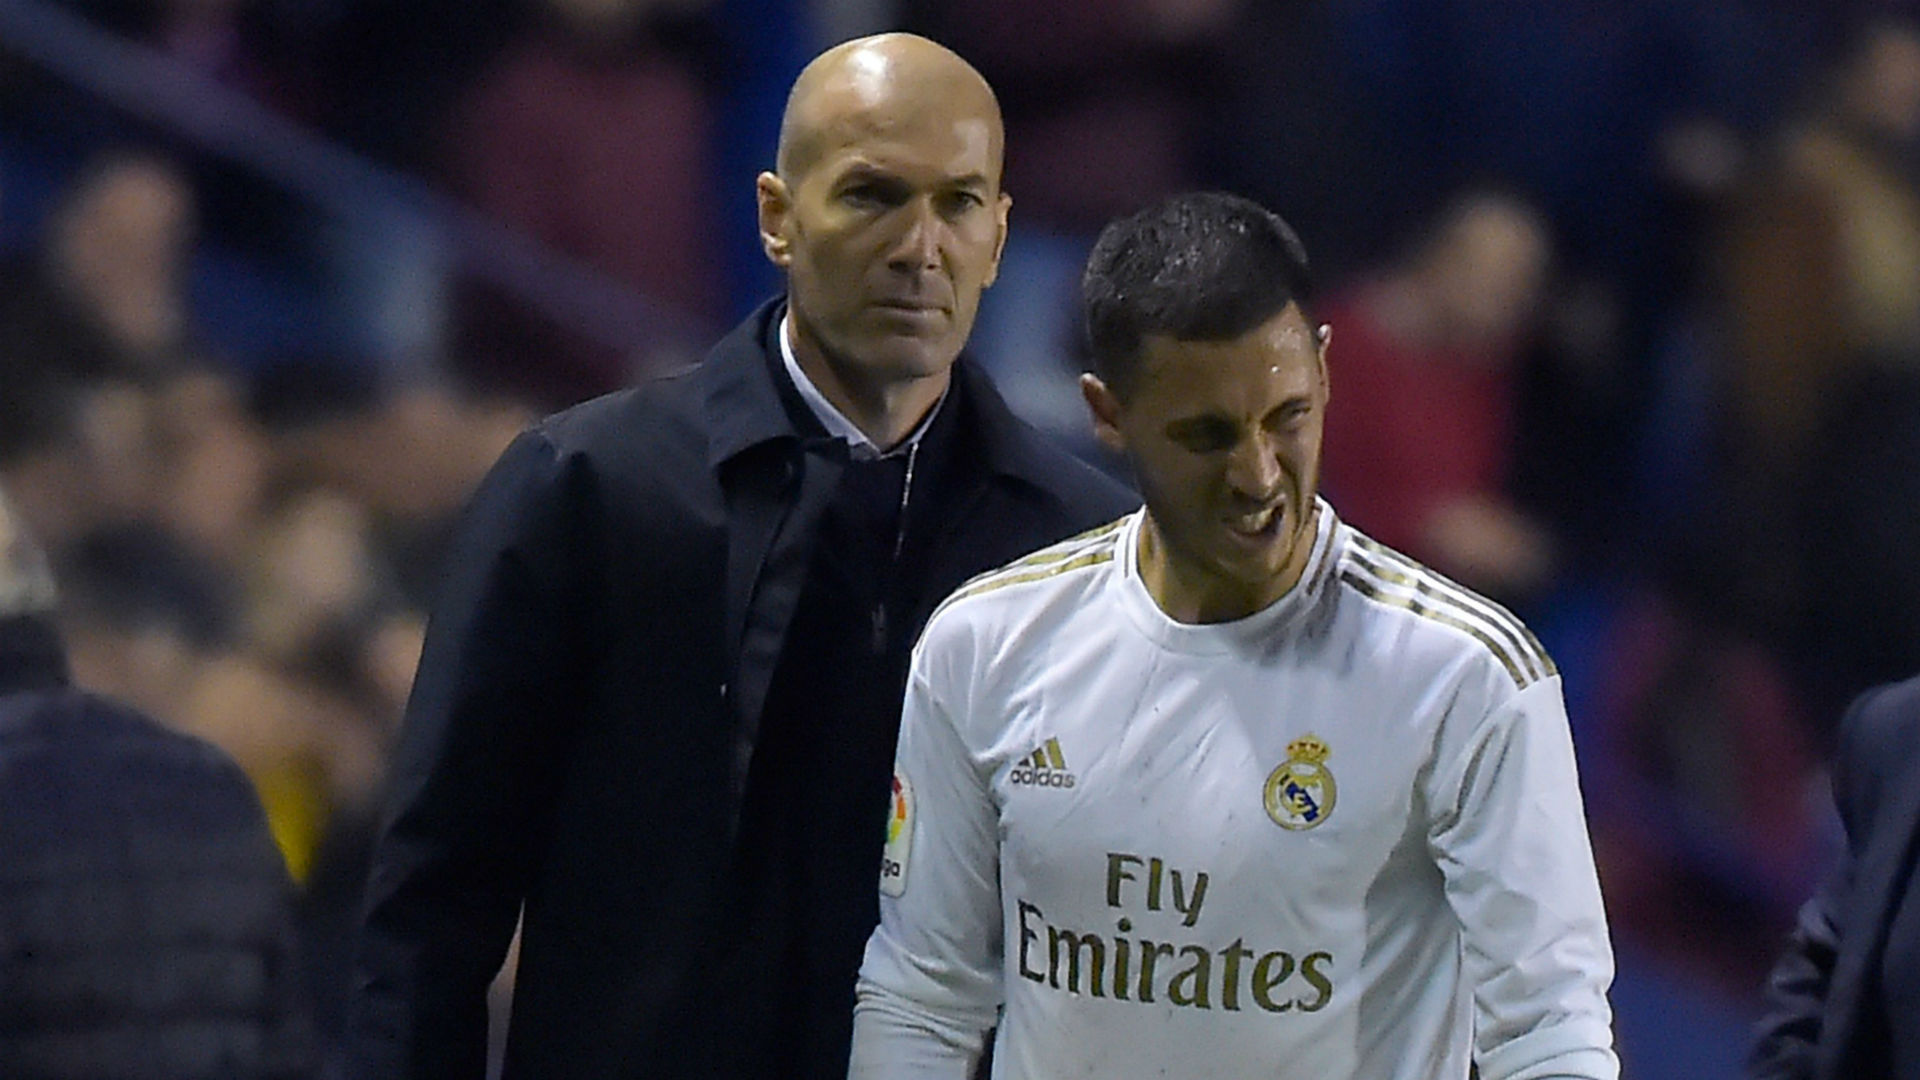 Zidane calls for 'calm' on Hazard after leaving Real Madrid star out against Getafe